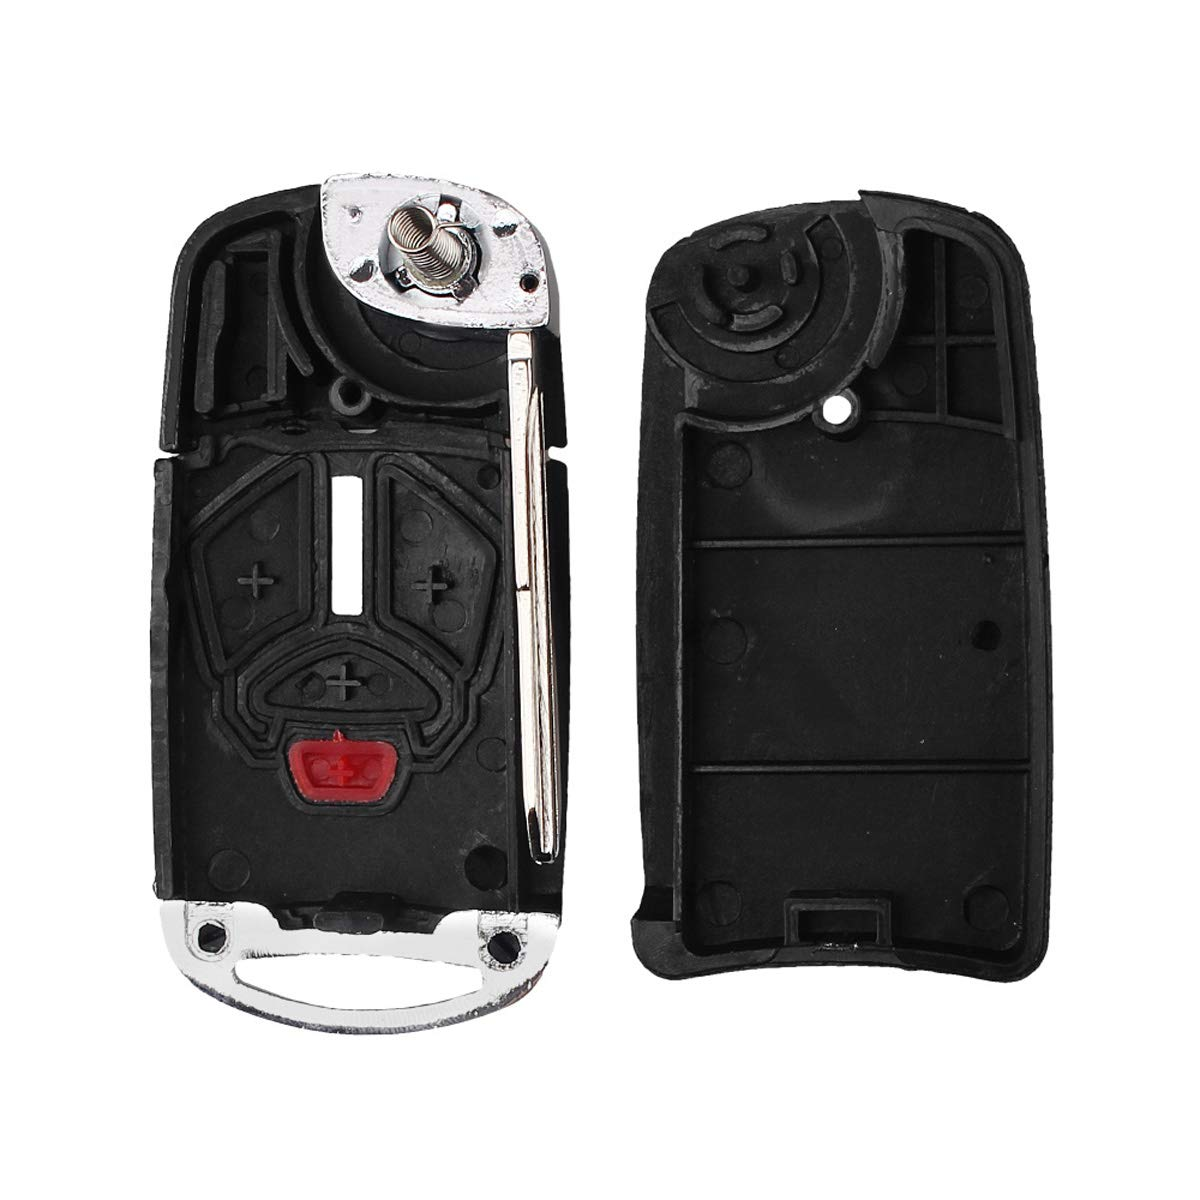 No Chip Heart Horse 4 Buttons Remote Flip Folding Key Shell for Mitsubishi Eclipse Lancer Endeavor Galant Outlander 2007-2012 Modified